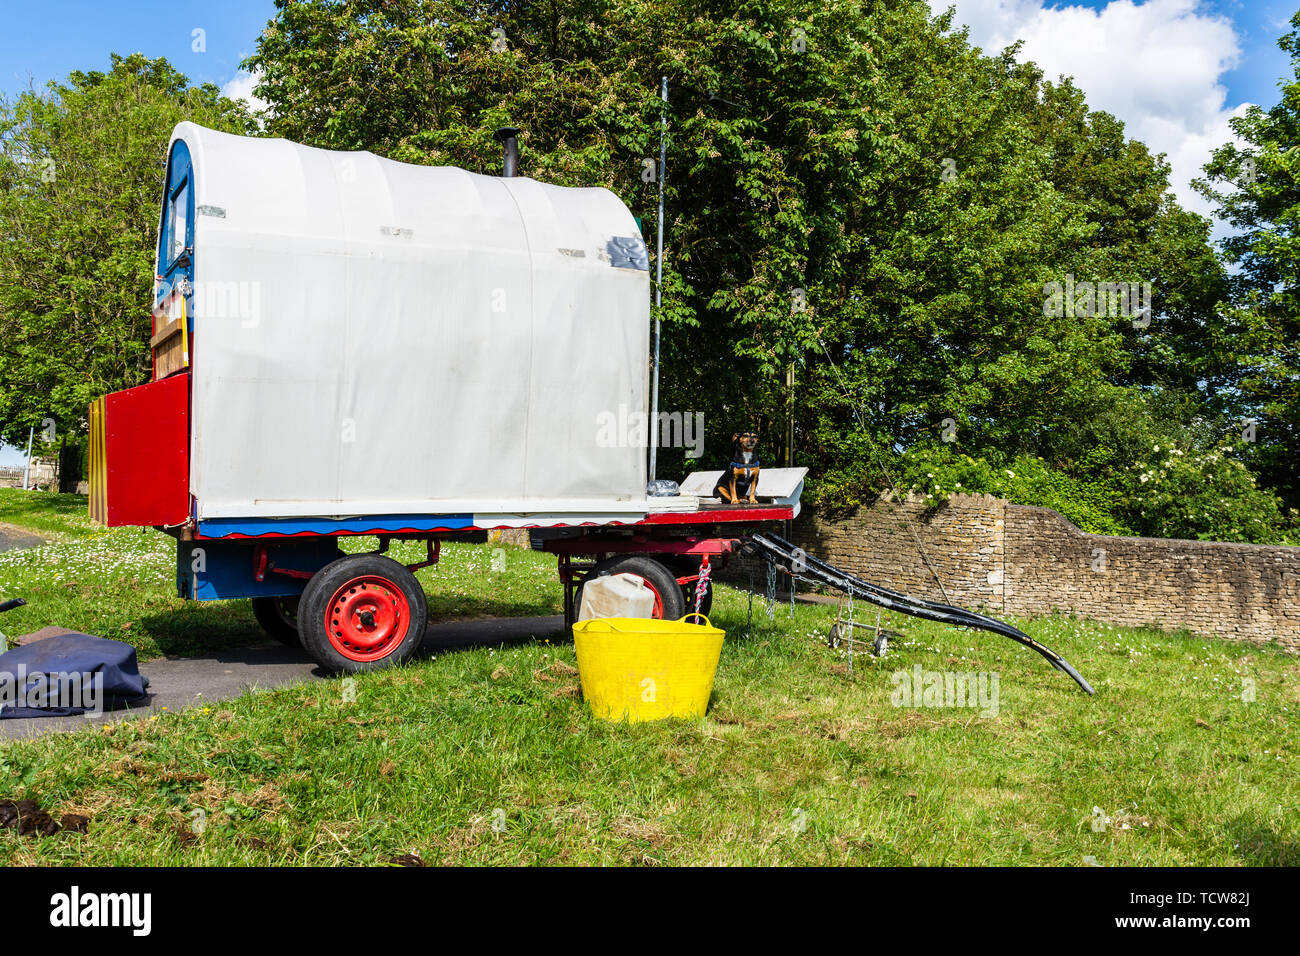 A small plain gypsy vardo caravan unhitched on a grass verge with a small dog sat up front - Stock Image